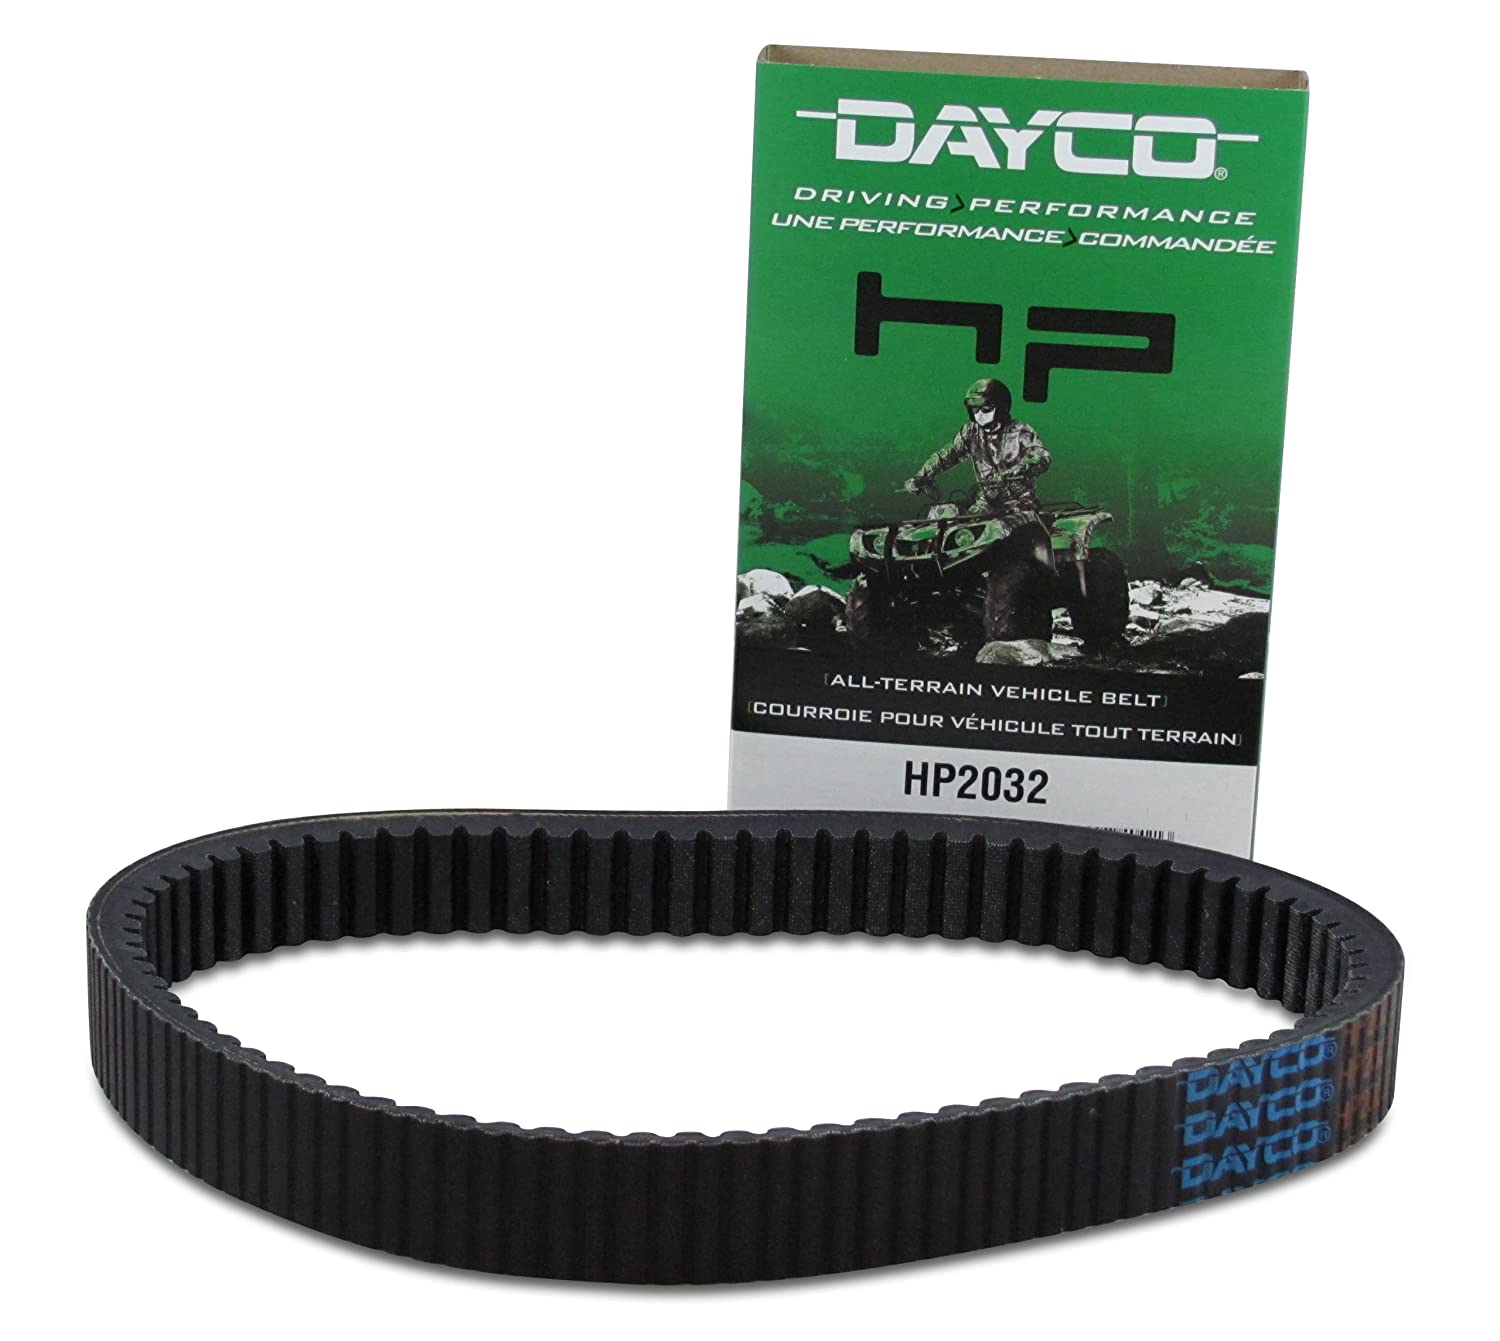 Dayco HP2032 HP High Performance ATV/UTV Drive Belt